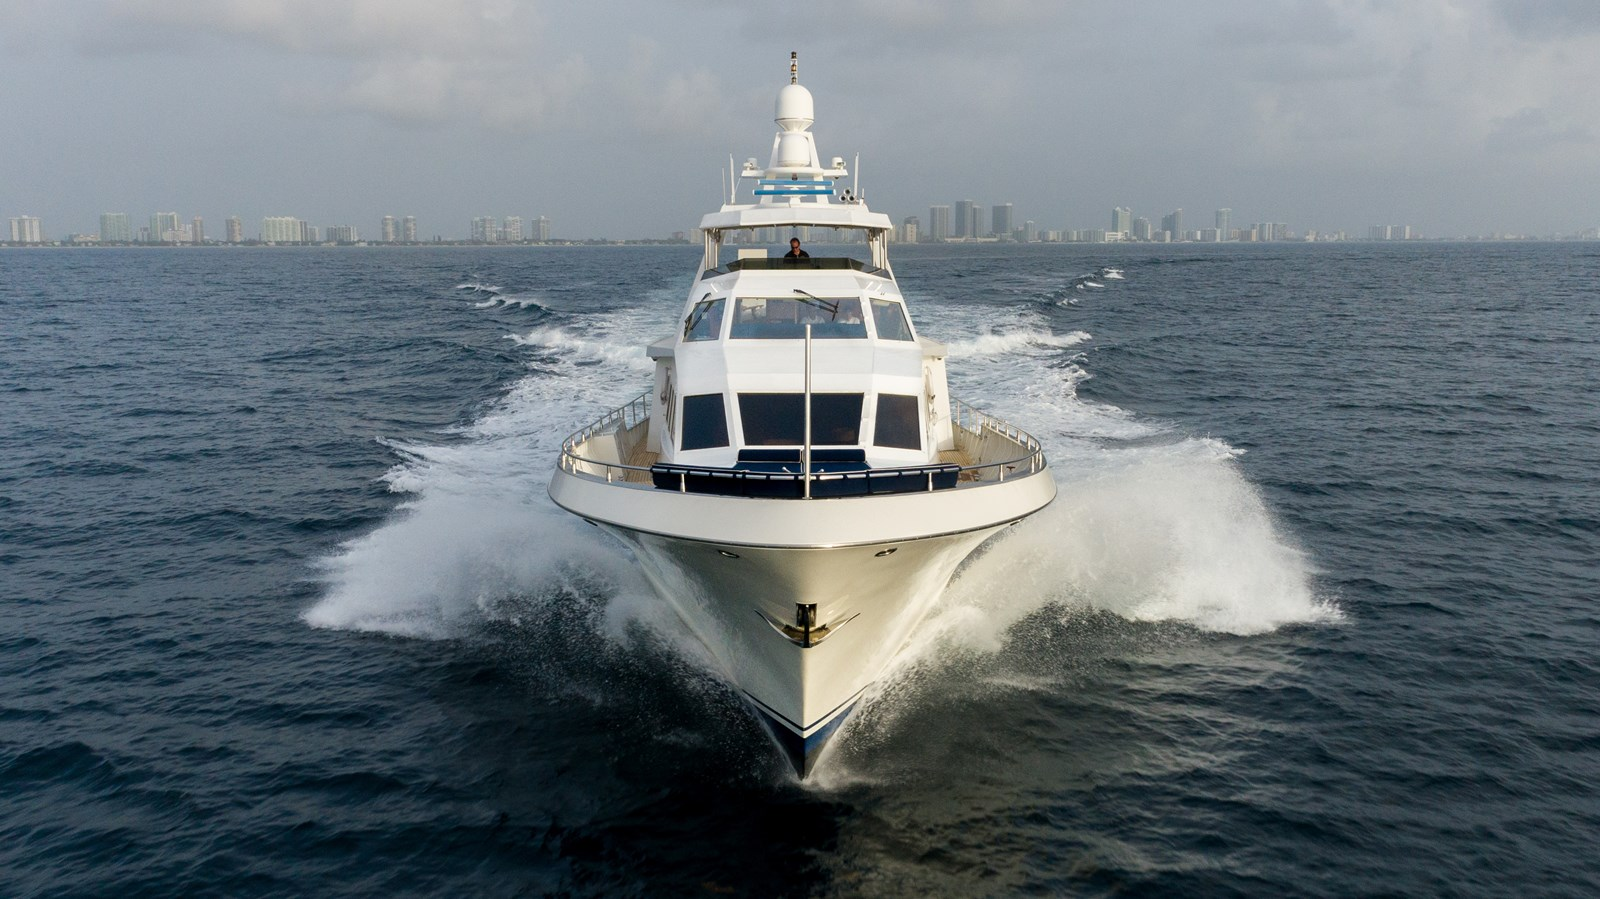 No Buoys yacht for sale